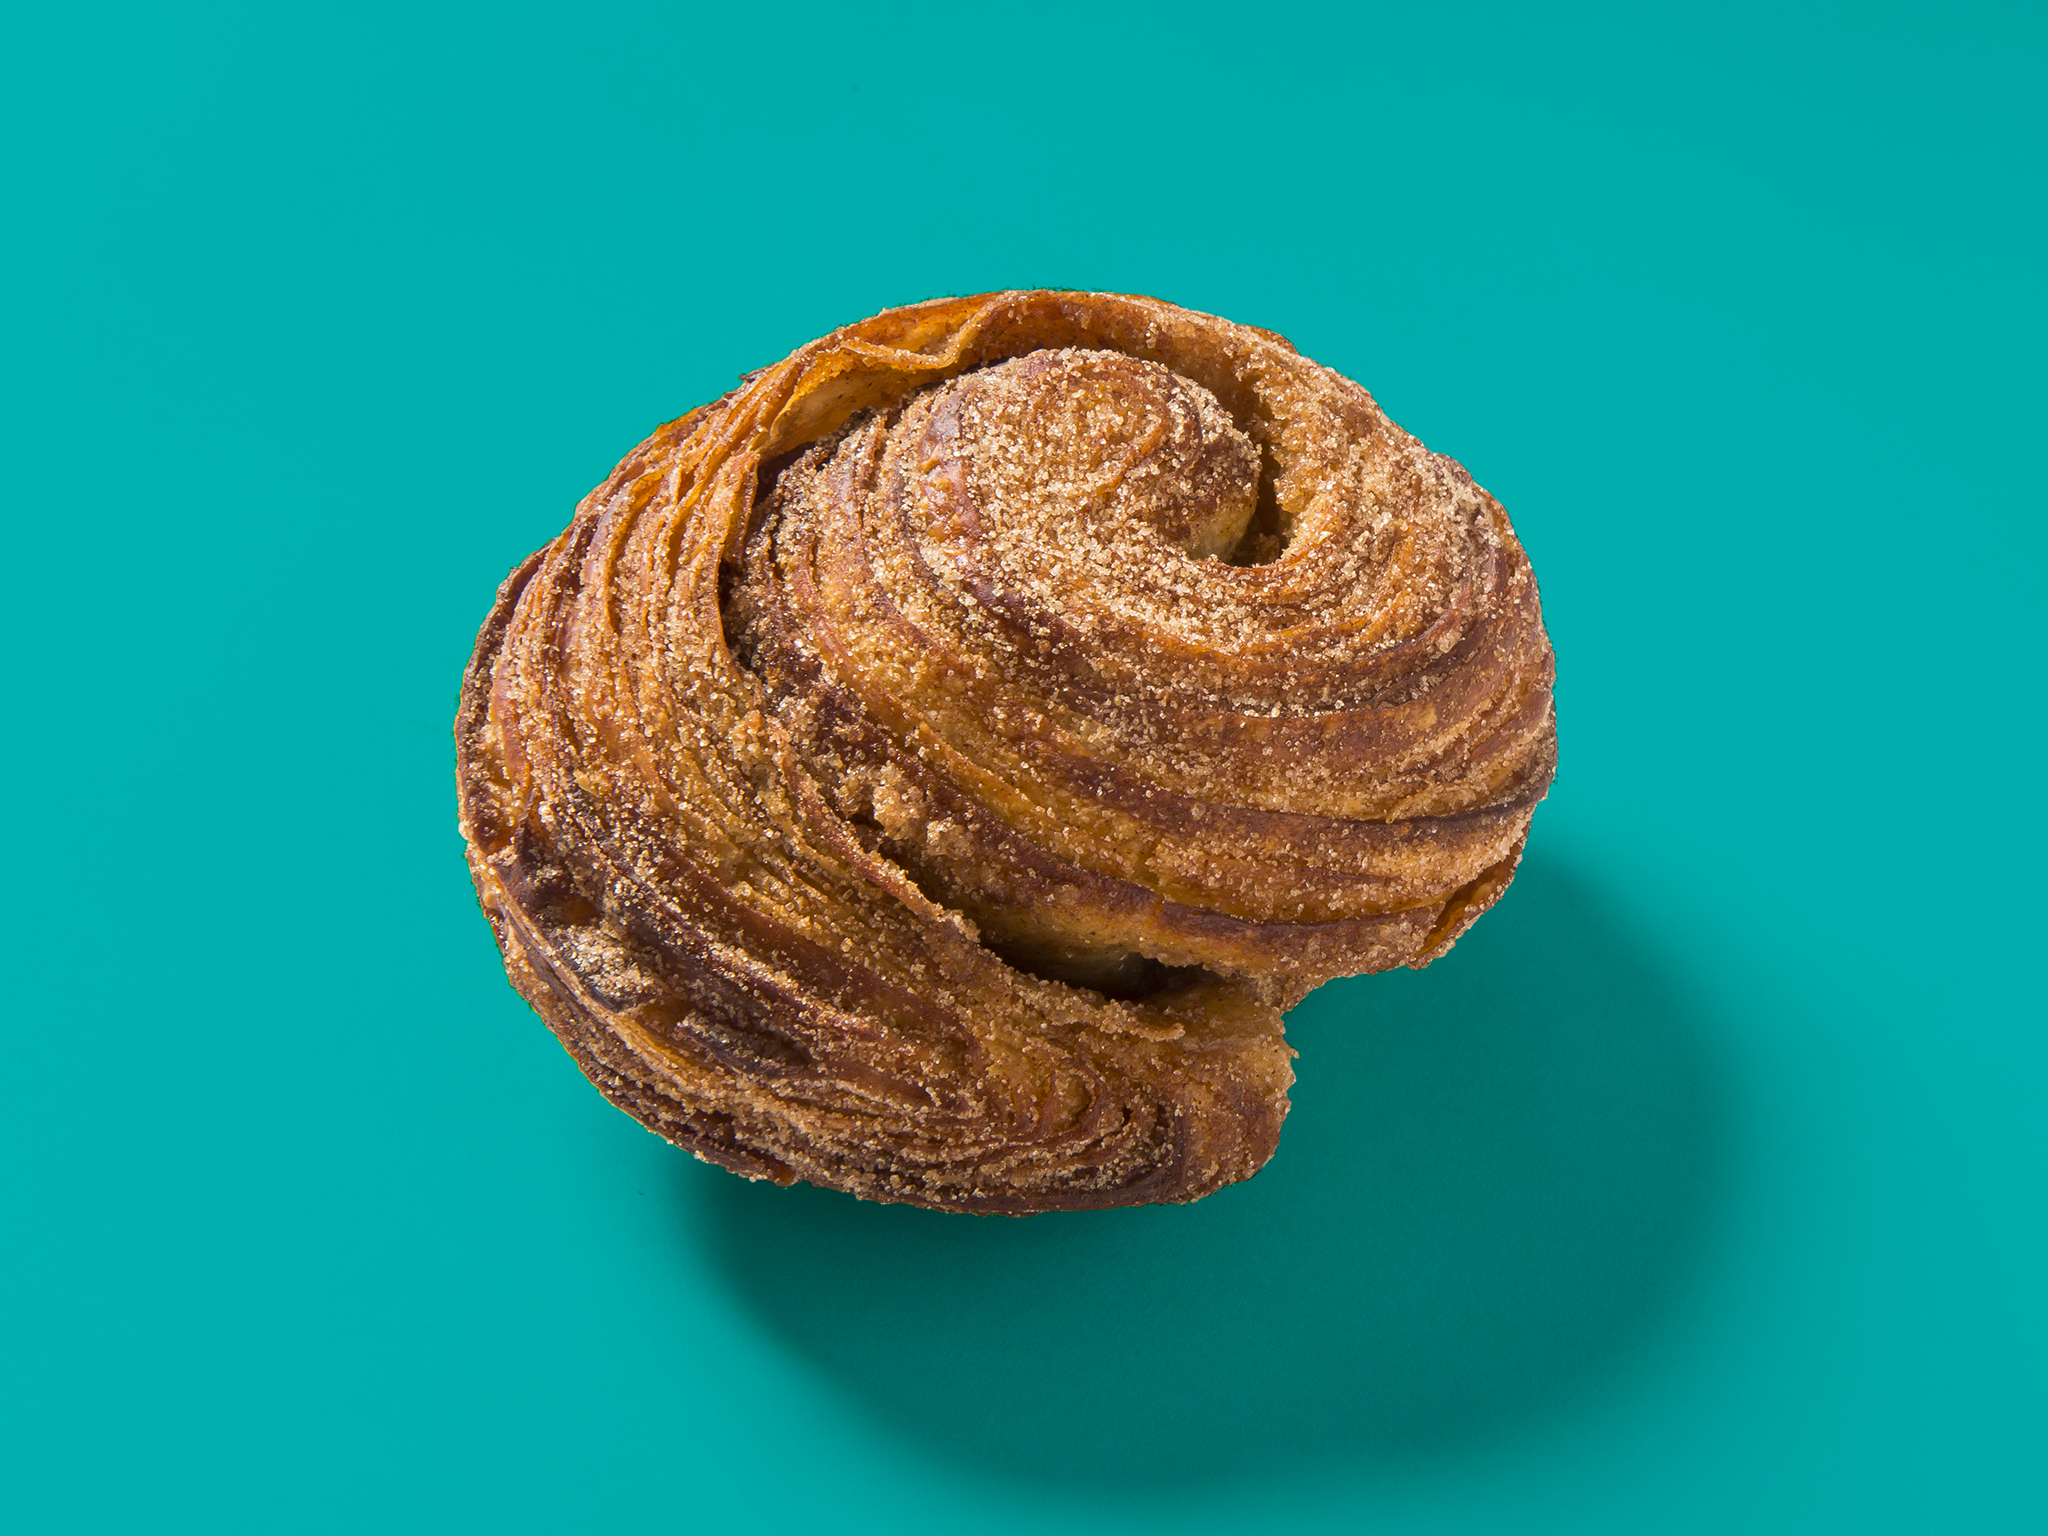 Kouign amann pastry on a turquoise background